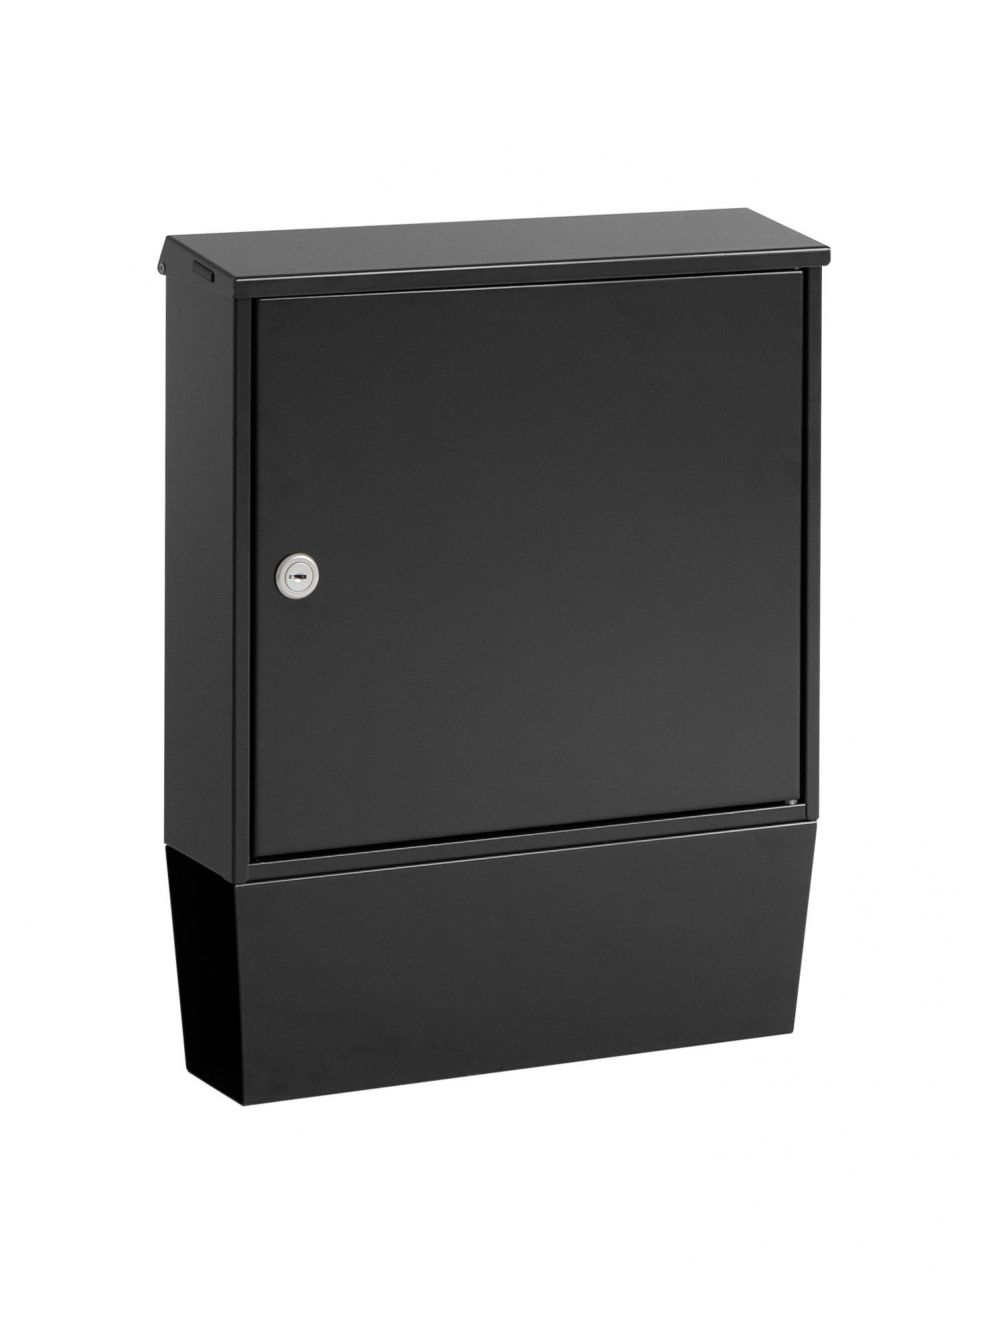 Knobloch Portland Locking Surface Mount Mailbox with Integrated Newspaper Holder in Deep Black